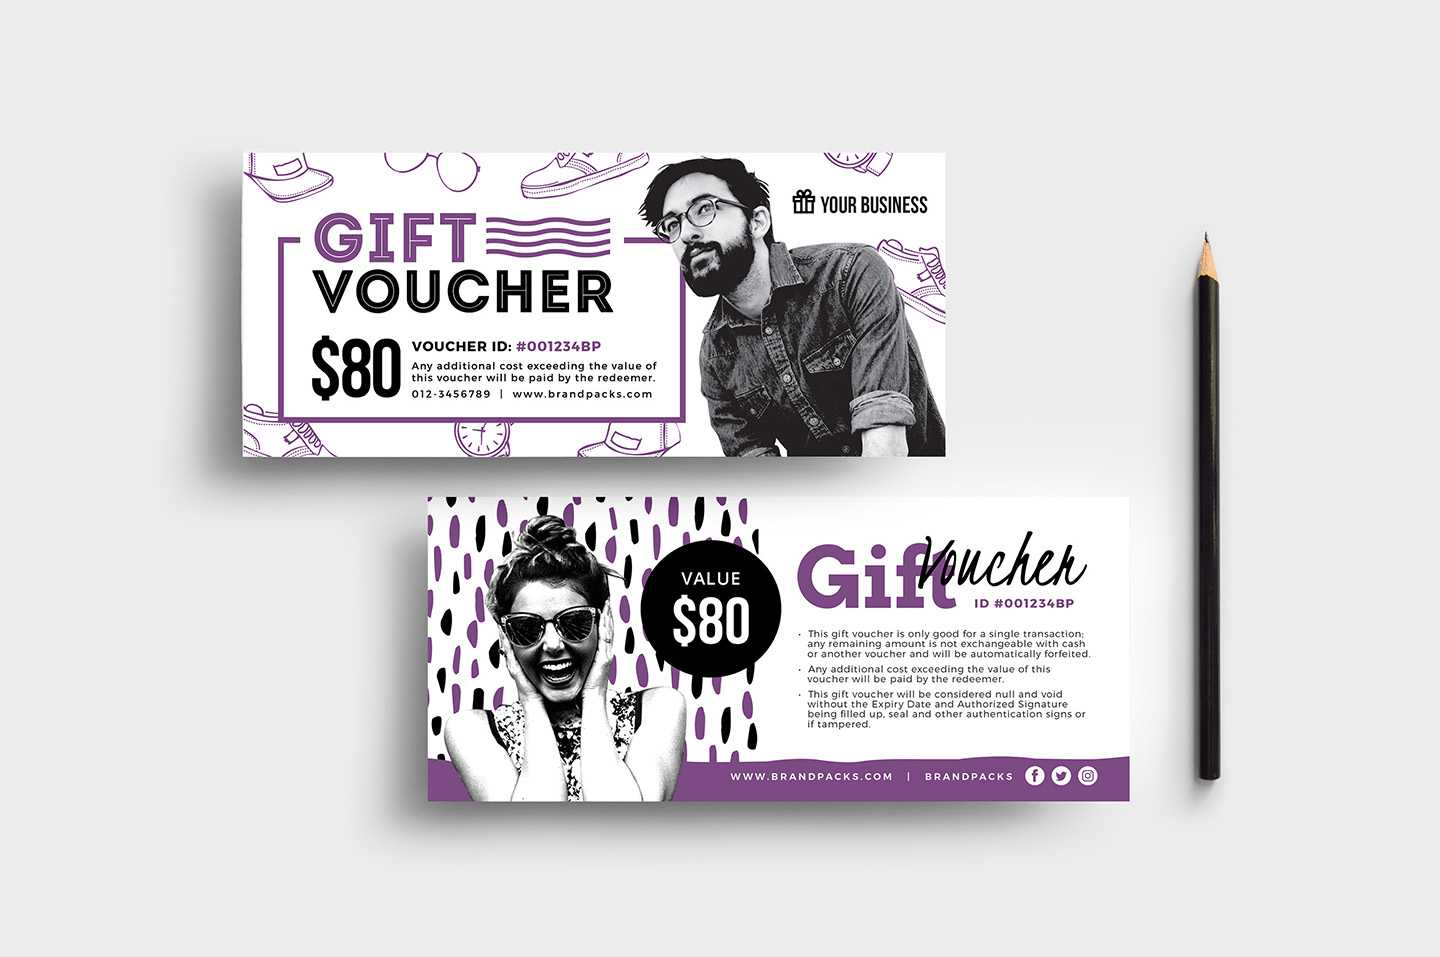 Free Gift Voucher Templates (Psd & Ai) - Brandpacks pertaining to Gift Card Template Illustrator